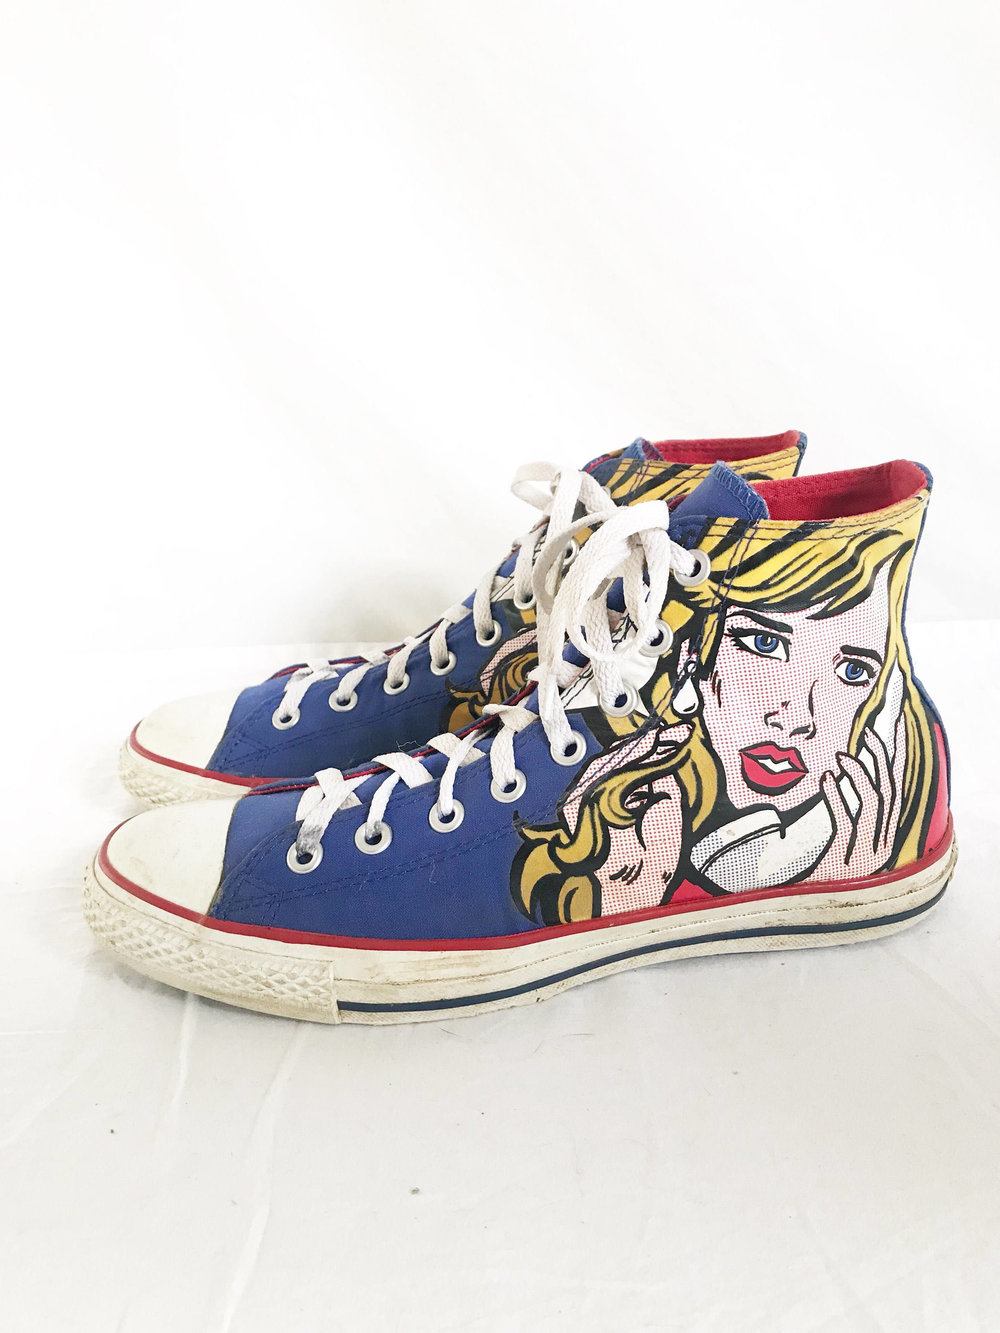 Roy Lichenstein Pop Art High Top Sneakers from  Time Bomb Vintage